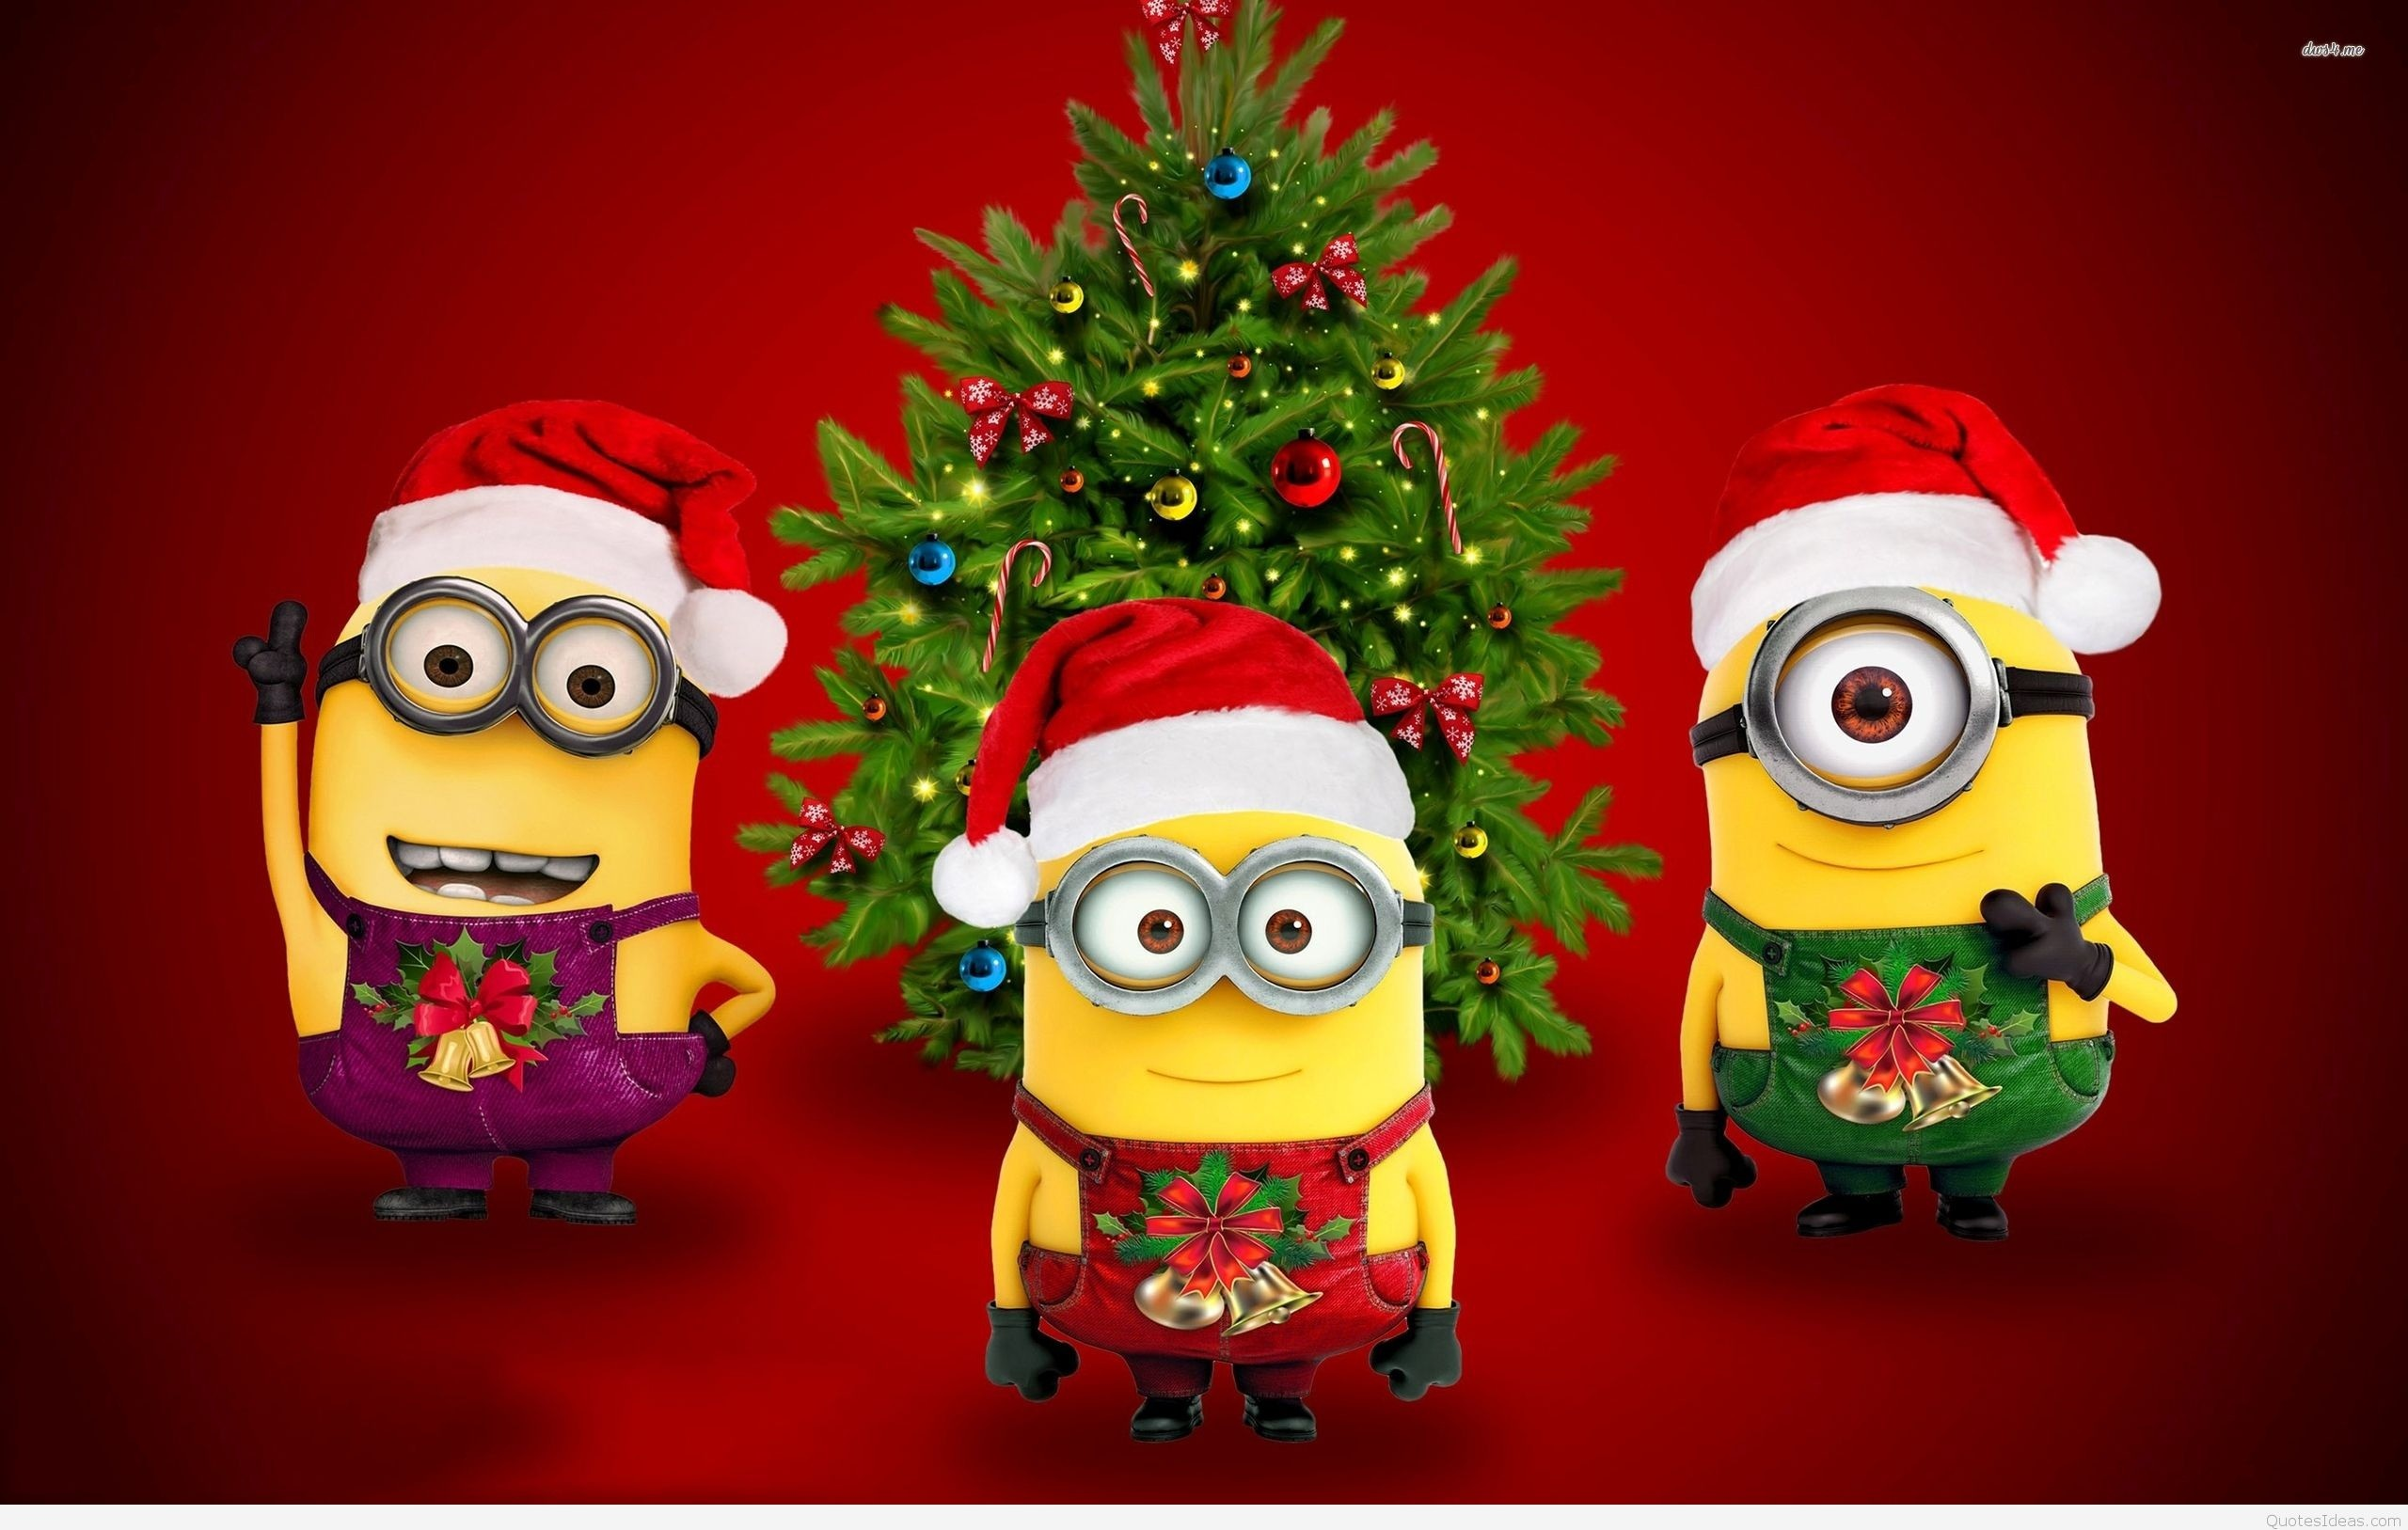 872691 funny christmas wallpapers 2560x1627 for phone funny christmas wallpapers 51 images - Funny Christmas Wallpaper